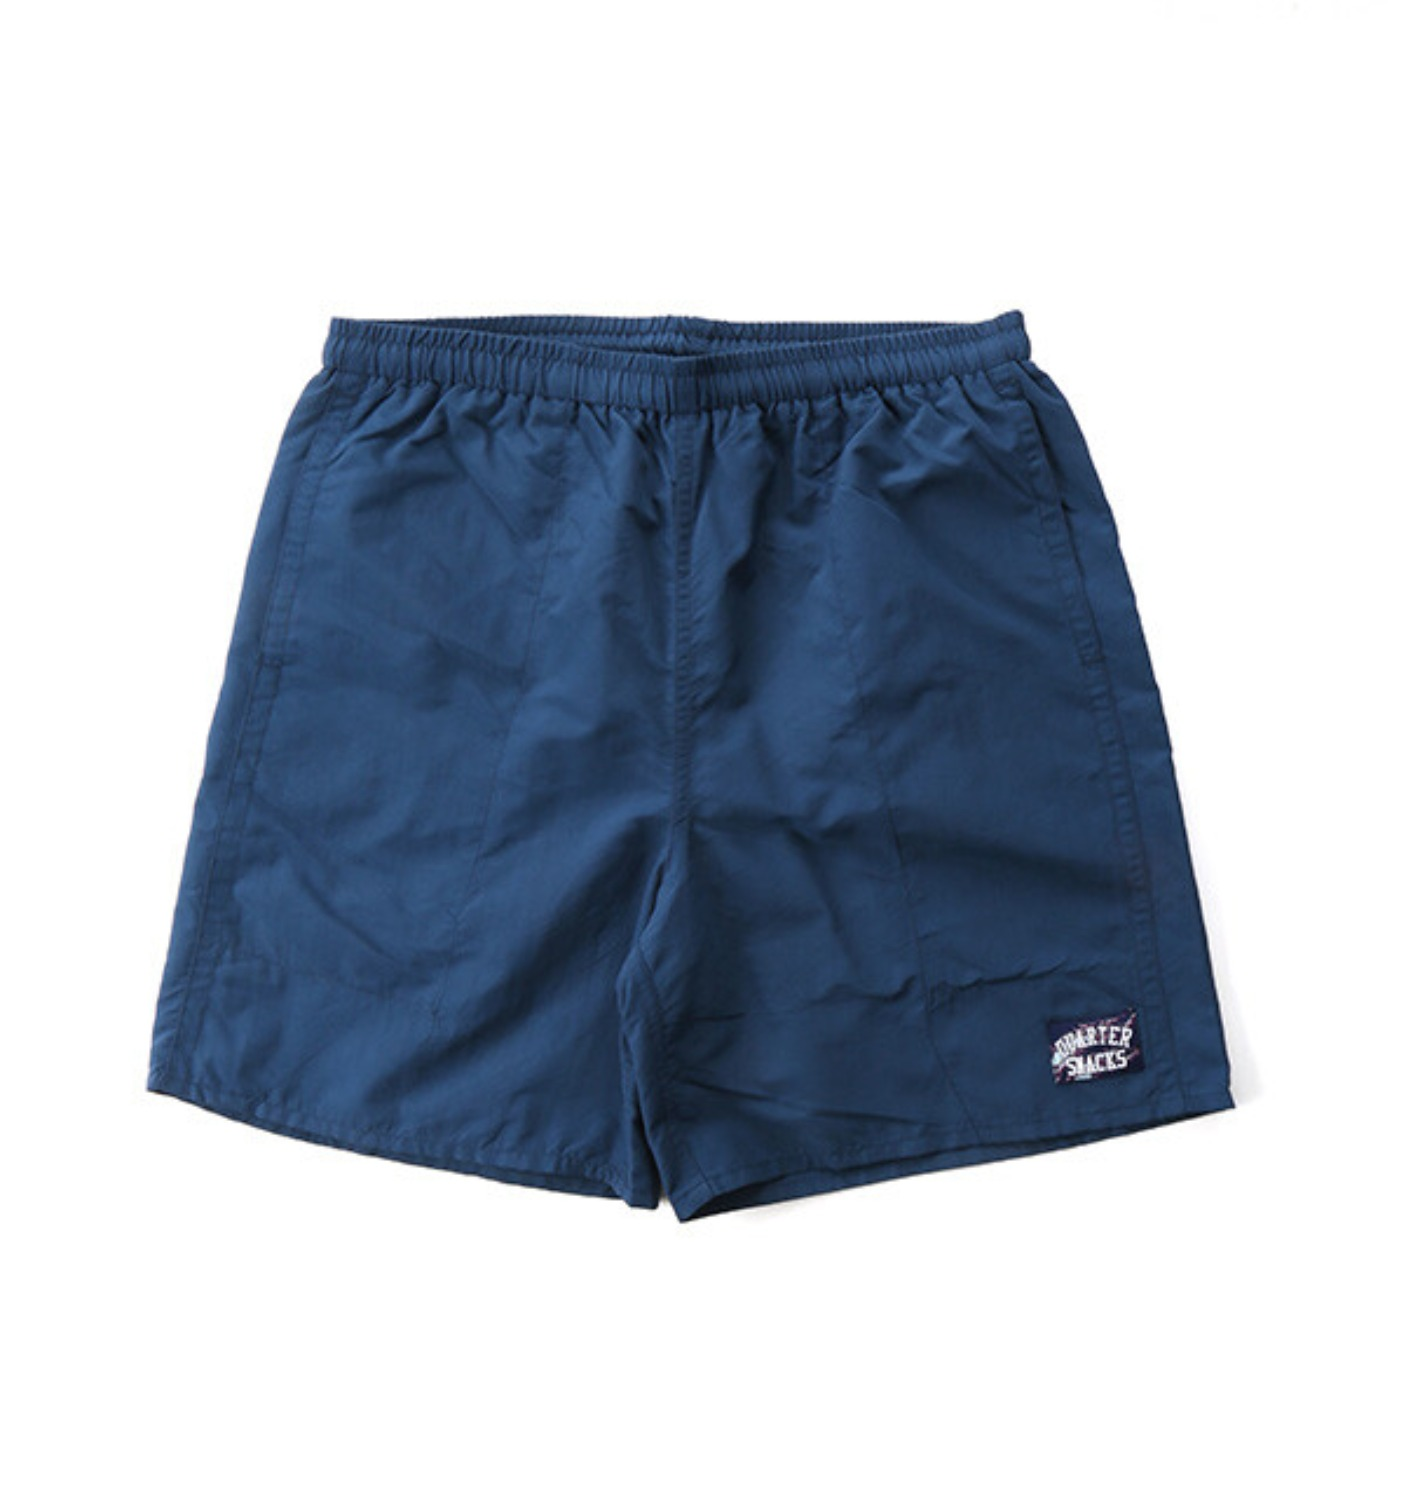 WATER SHORT NAVY